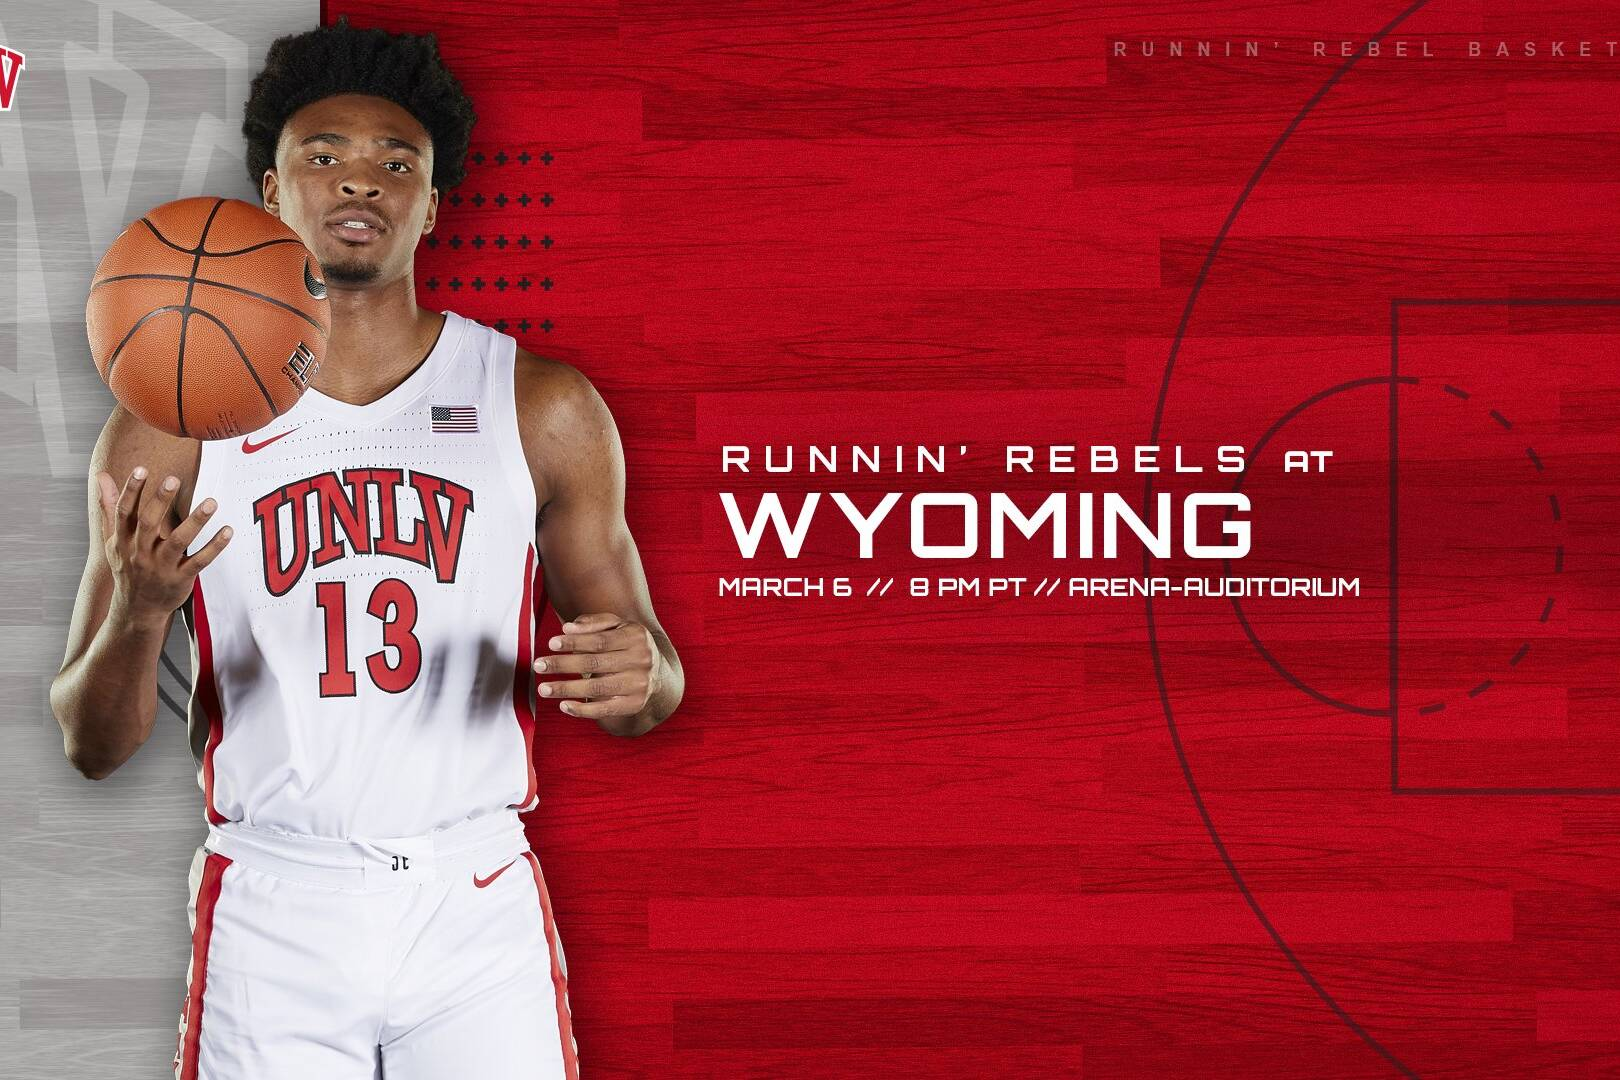 UNLV vs Wyoming